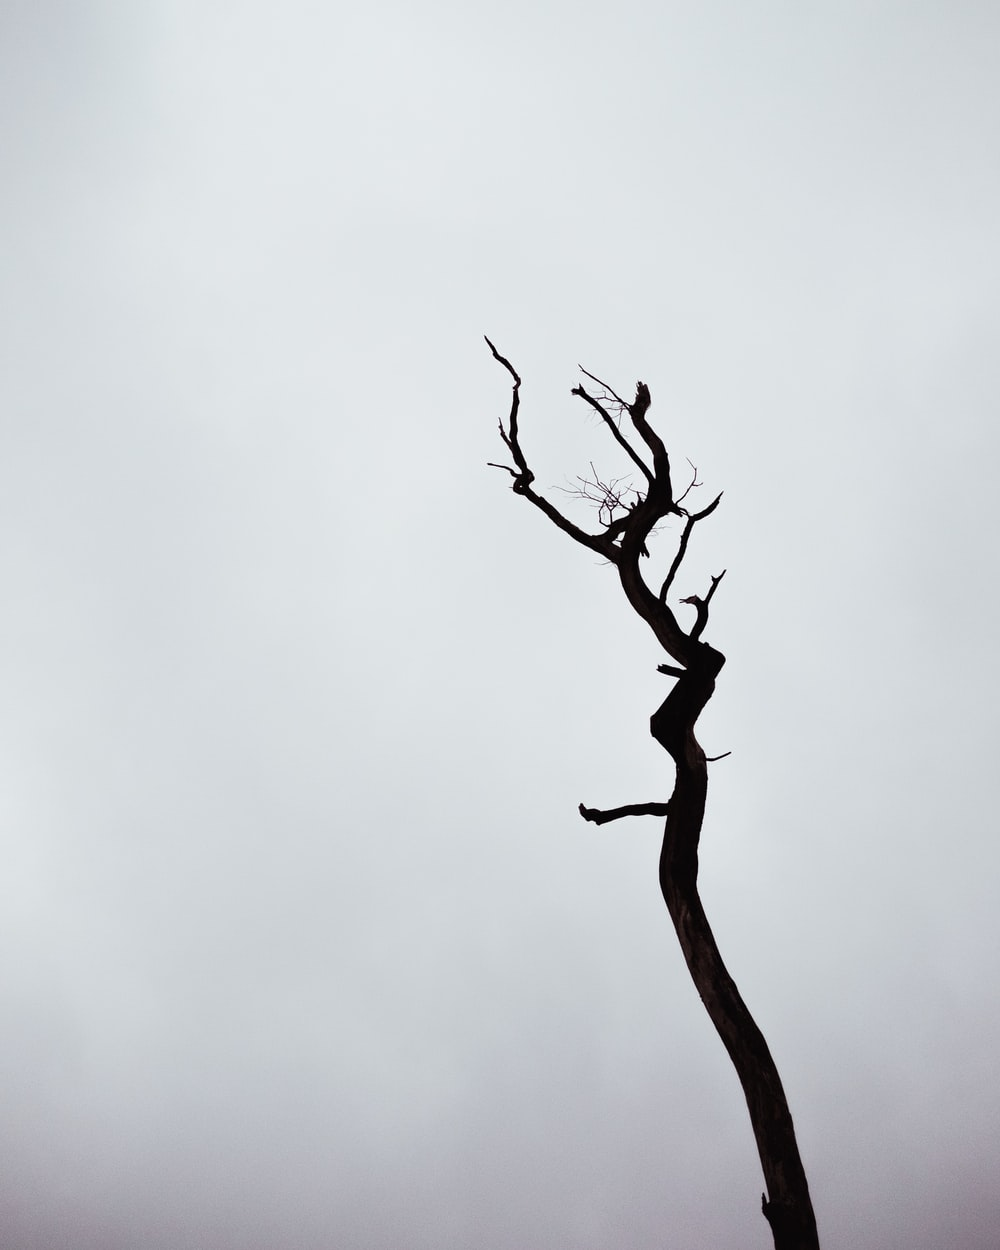 brown tree branch with white clouds